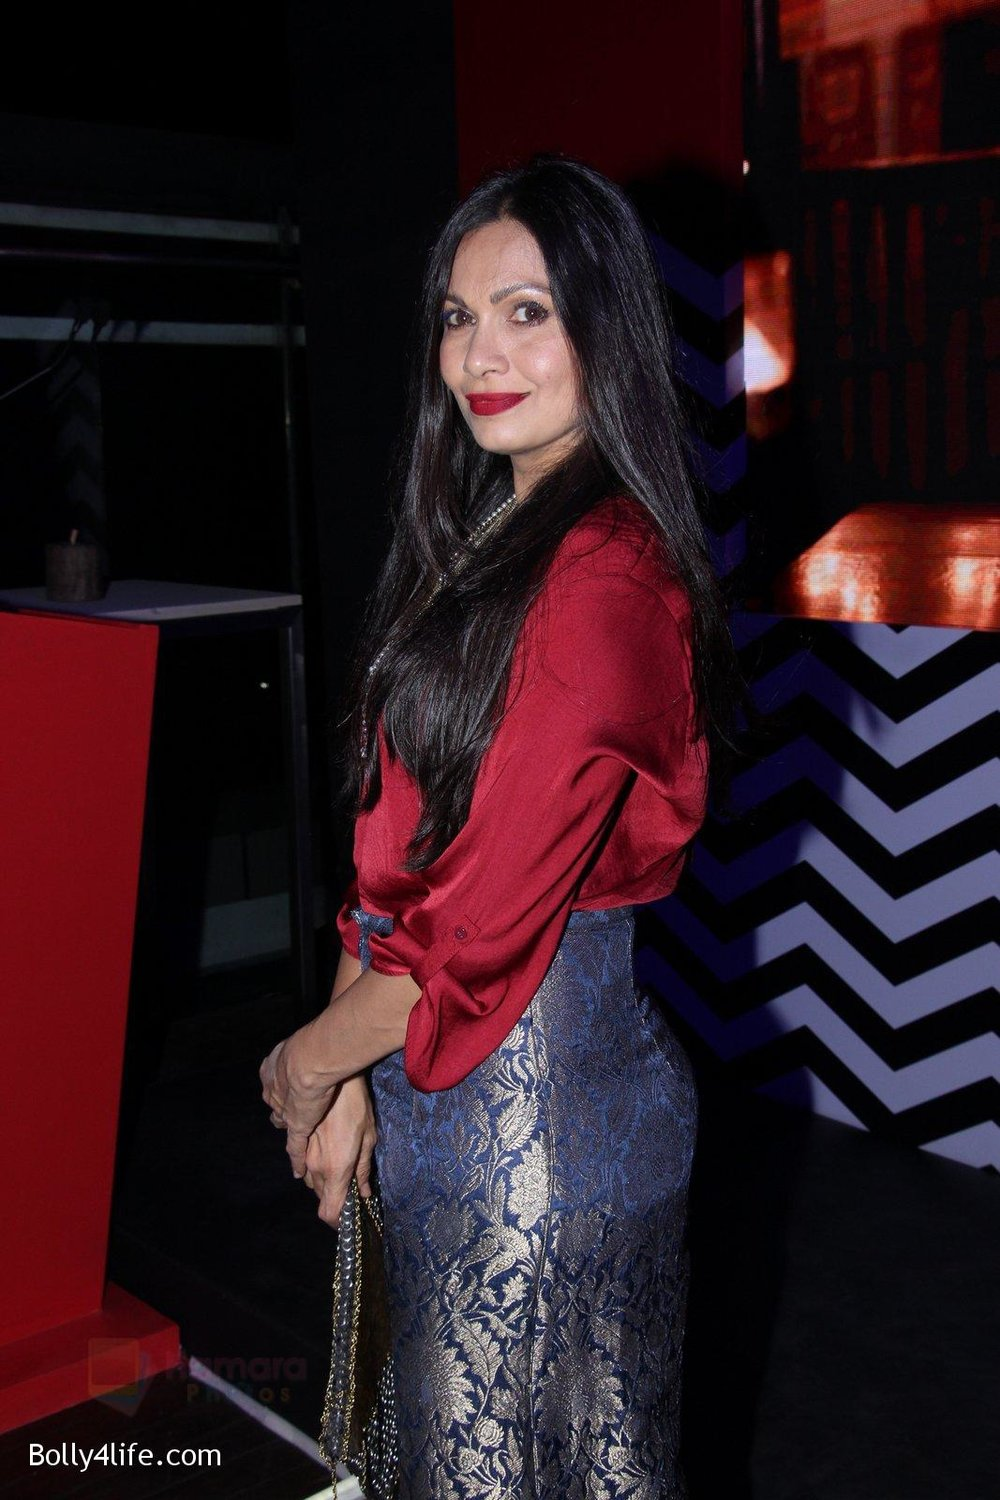 Maria-Goretti-at-Vogue-India-Fashion-Fund-Event-1.jpg